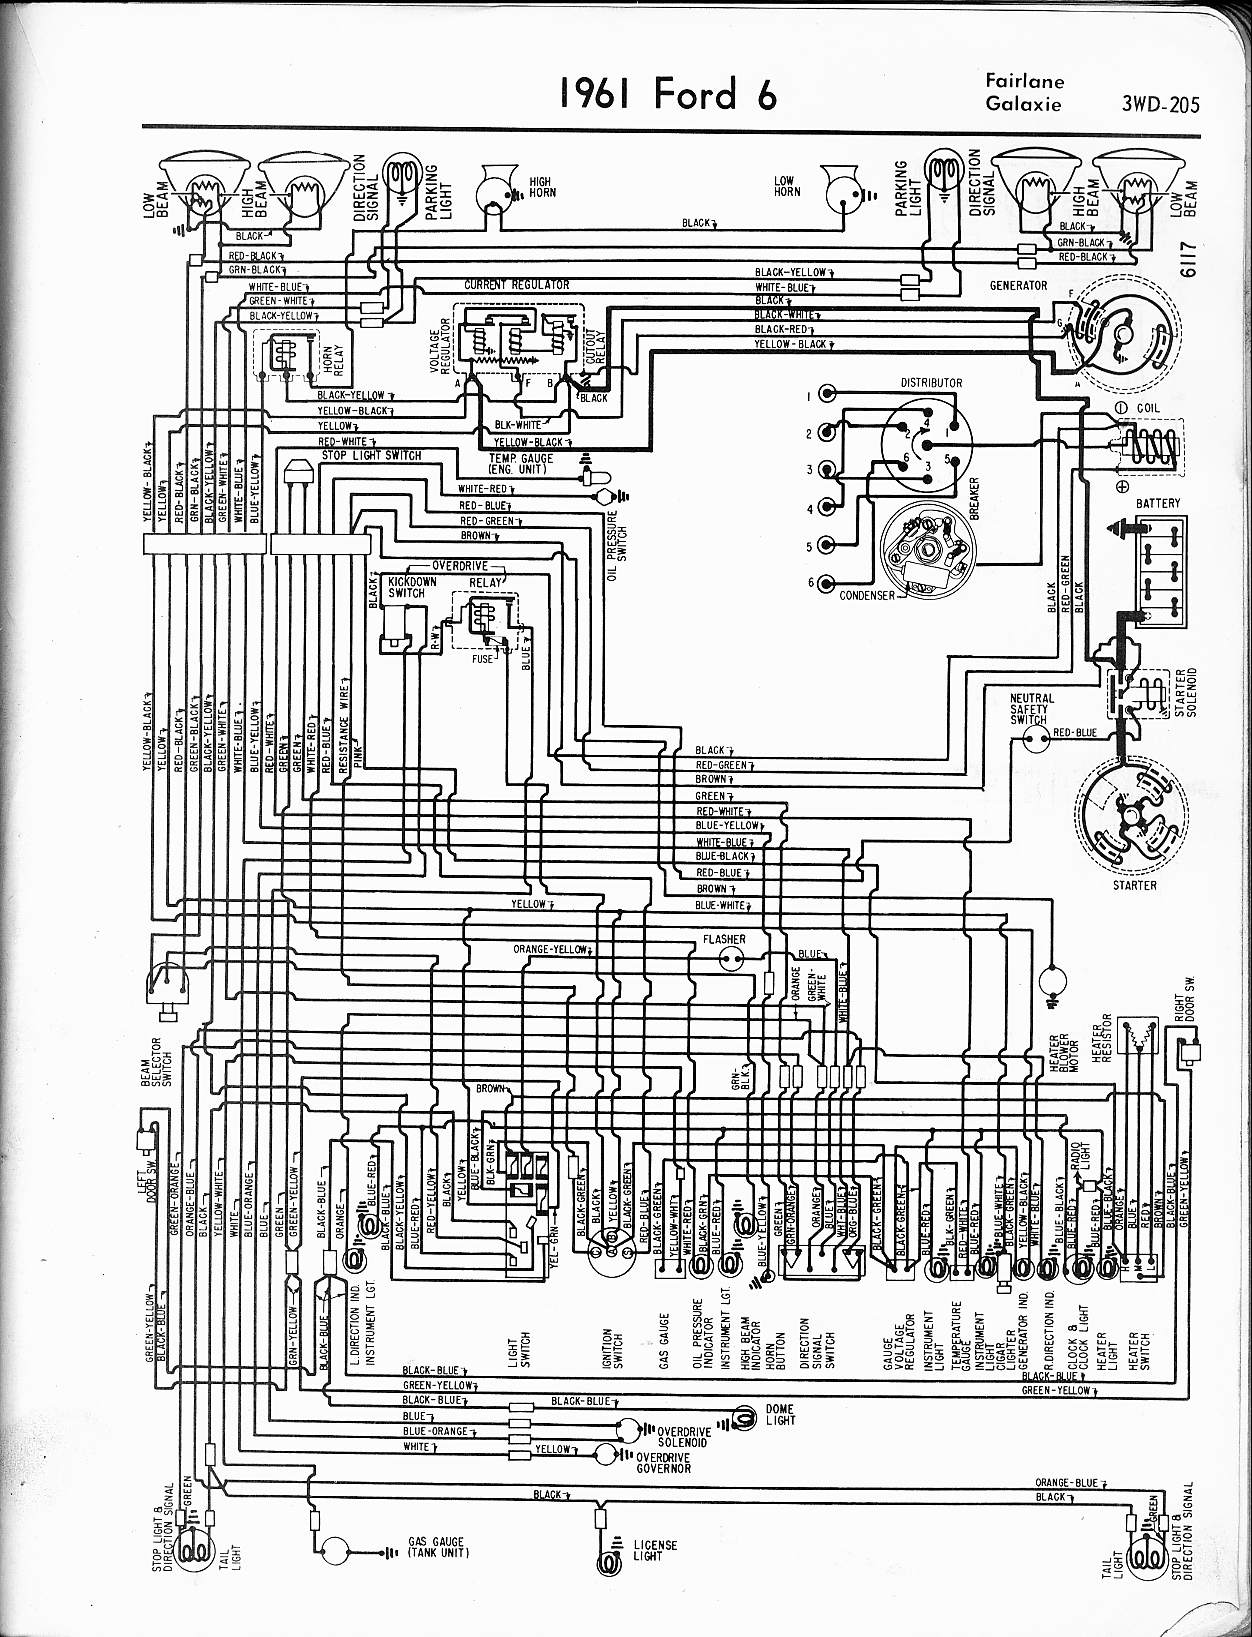 Outstanding Ef Falcon Wiring Diagram Composition - Best Images for ...